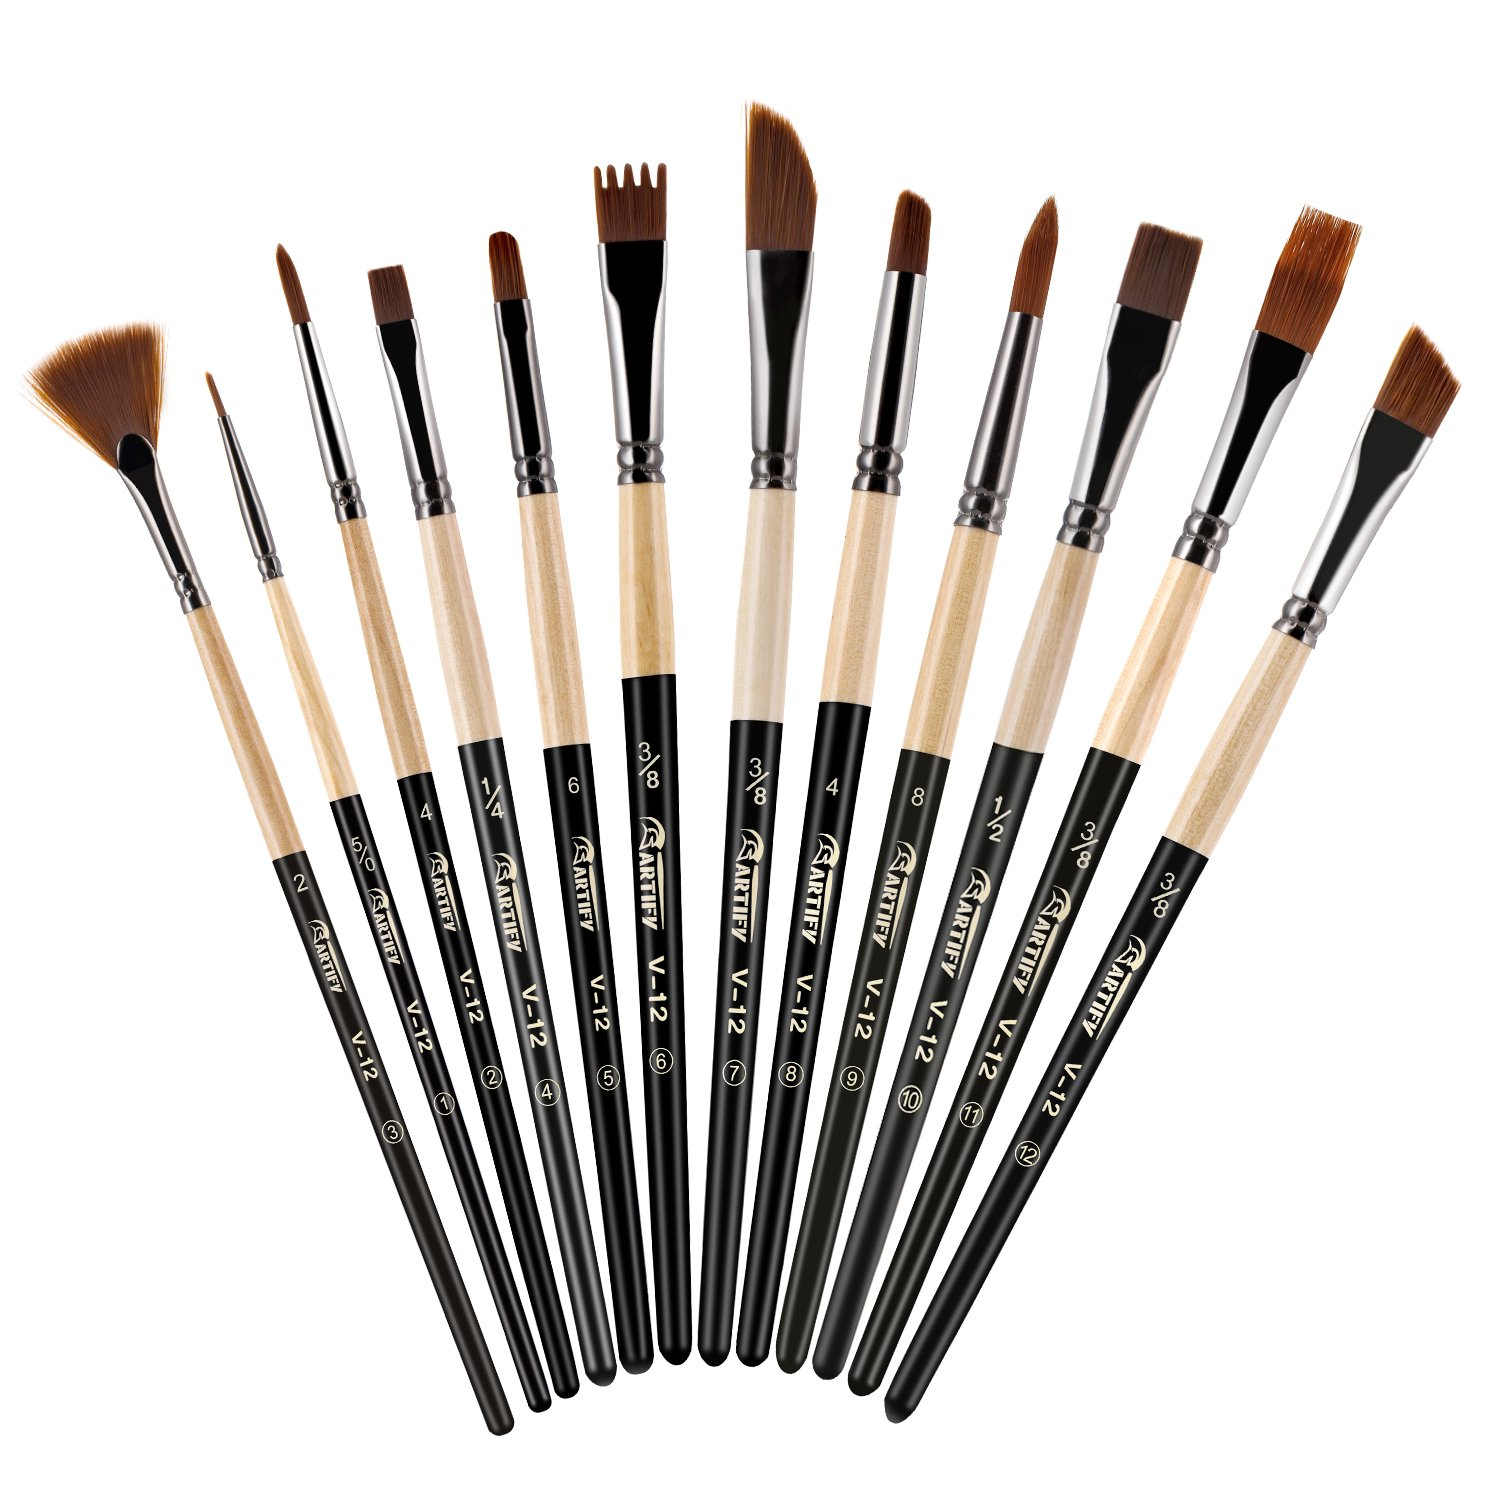 Artify 2018 New 12 Pcs Paint Brush Set with Amber Nylon Hairs Perfect for Acrylic, Oil, Watercolor, Gouache and Face Painting